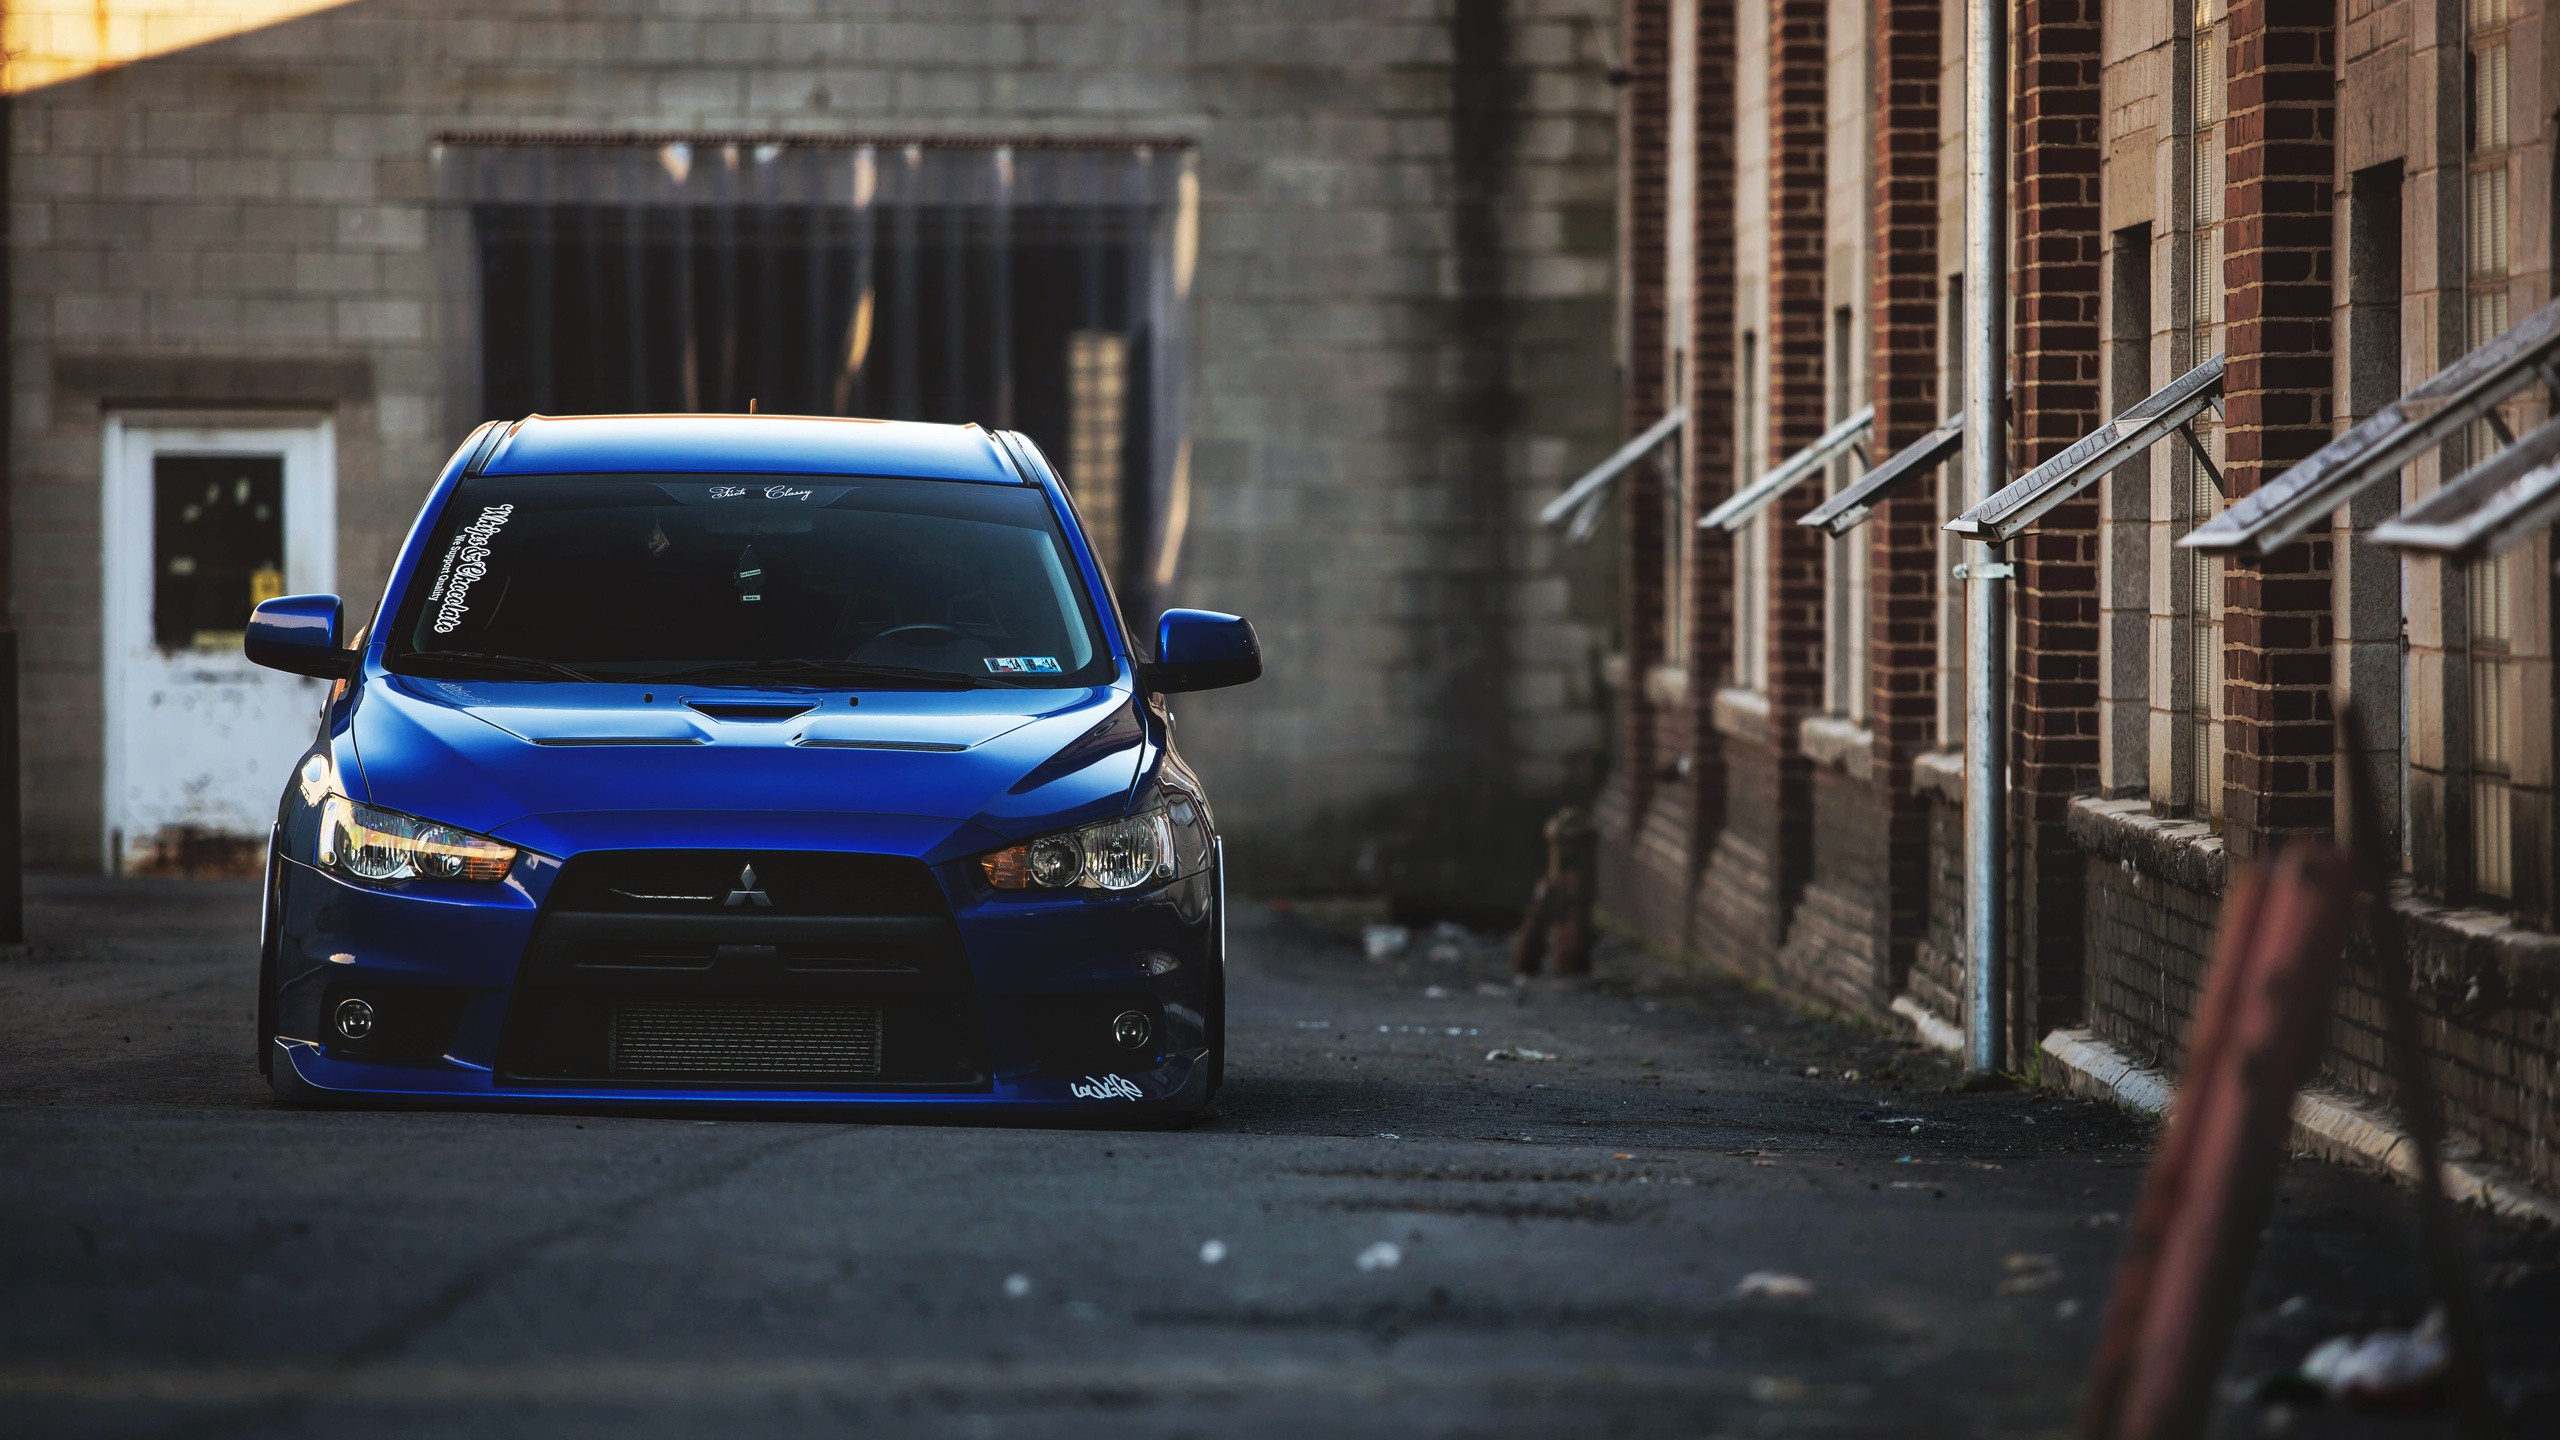 Evo 10 Wallpaper Wallpaper 2560x1440 Px Blue Cars Car Evo Mitsubishi Lancer